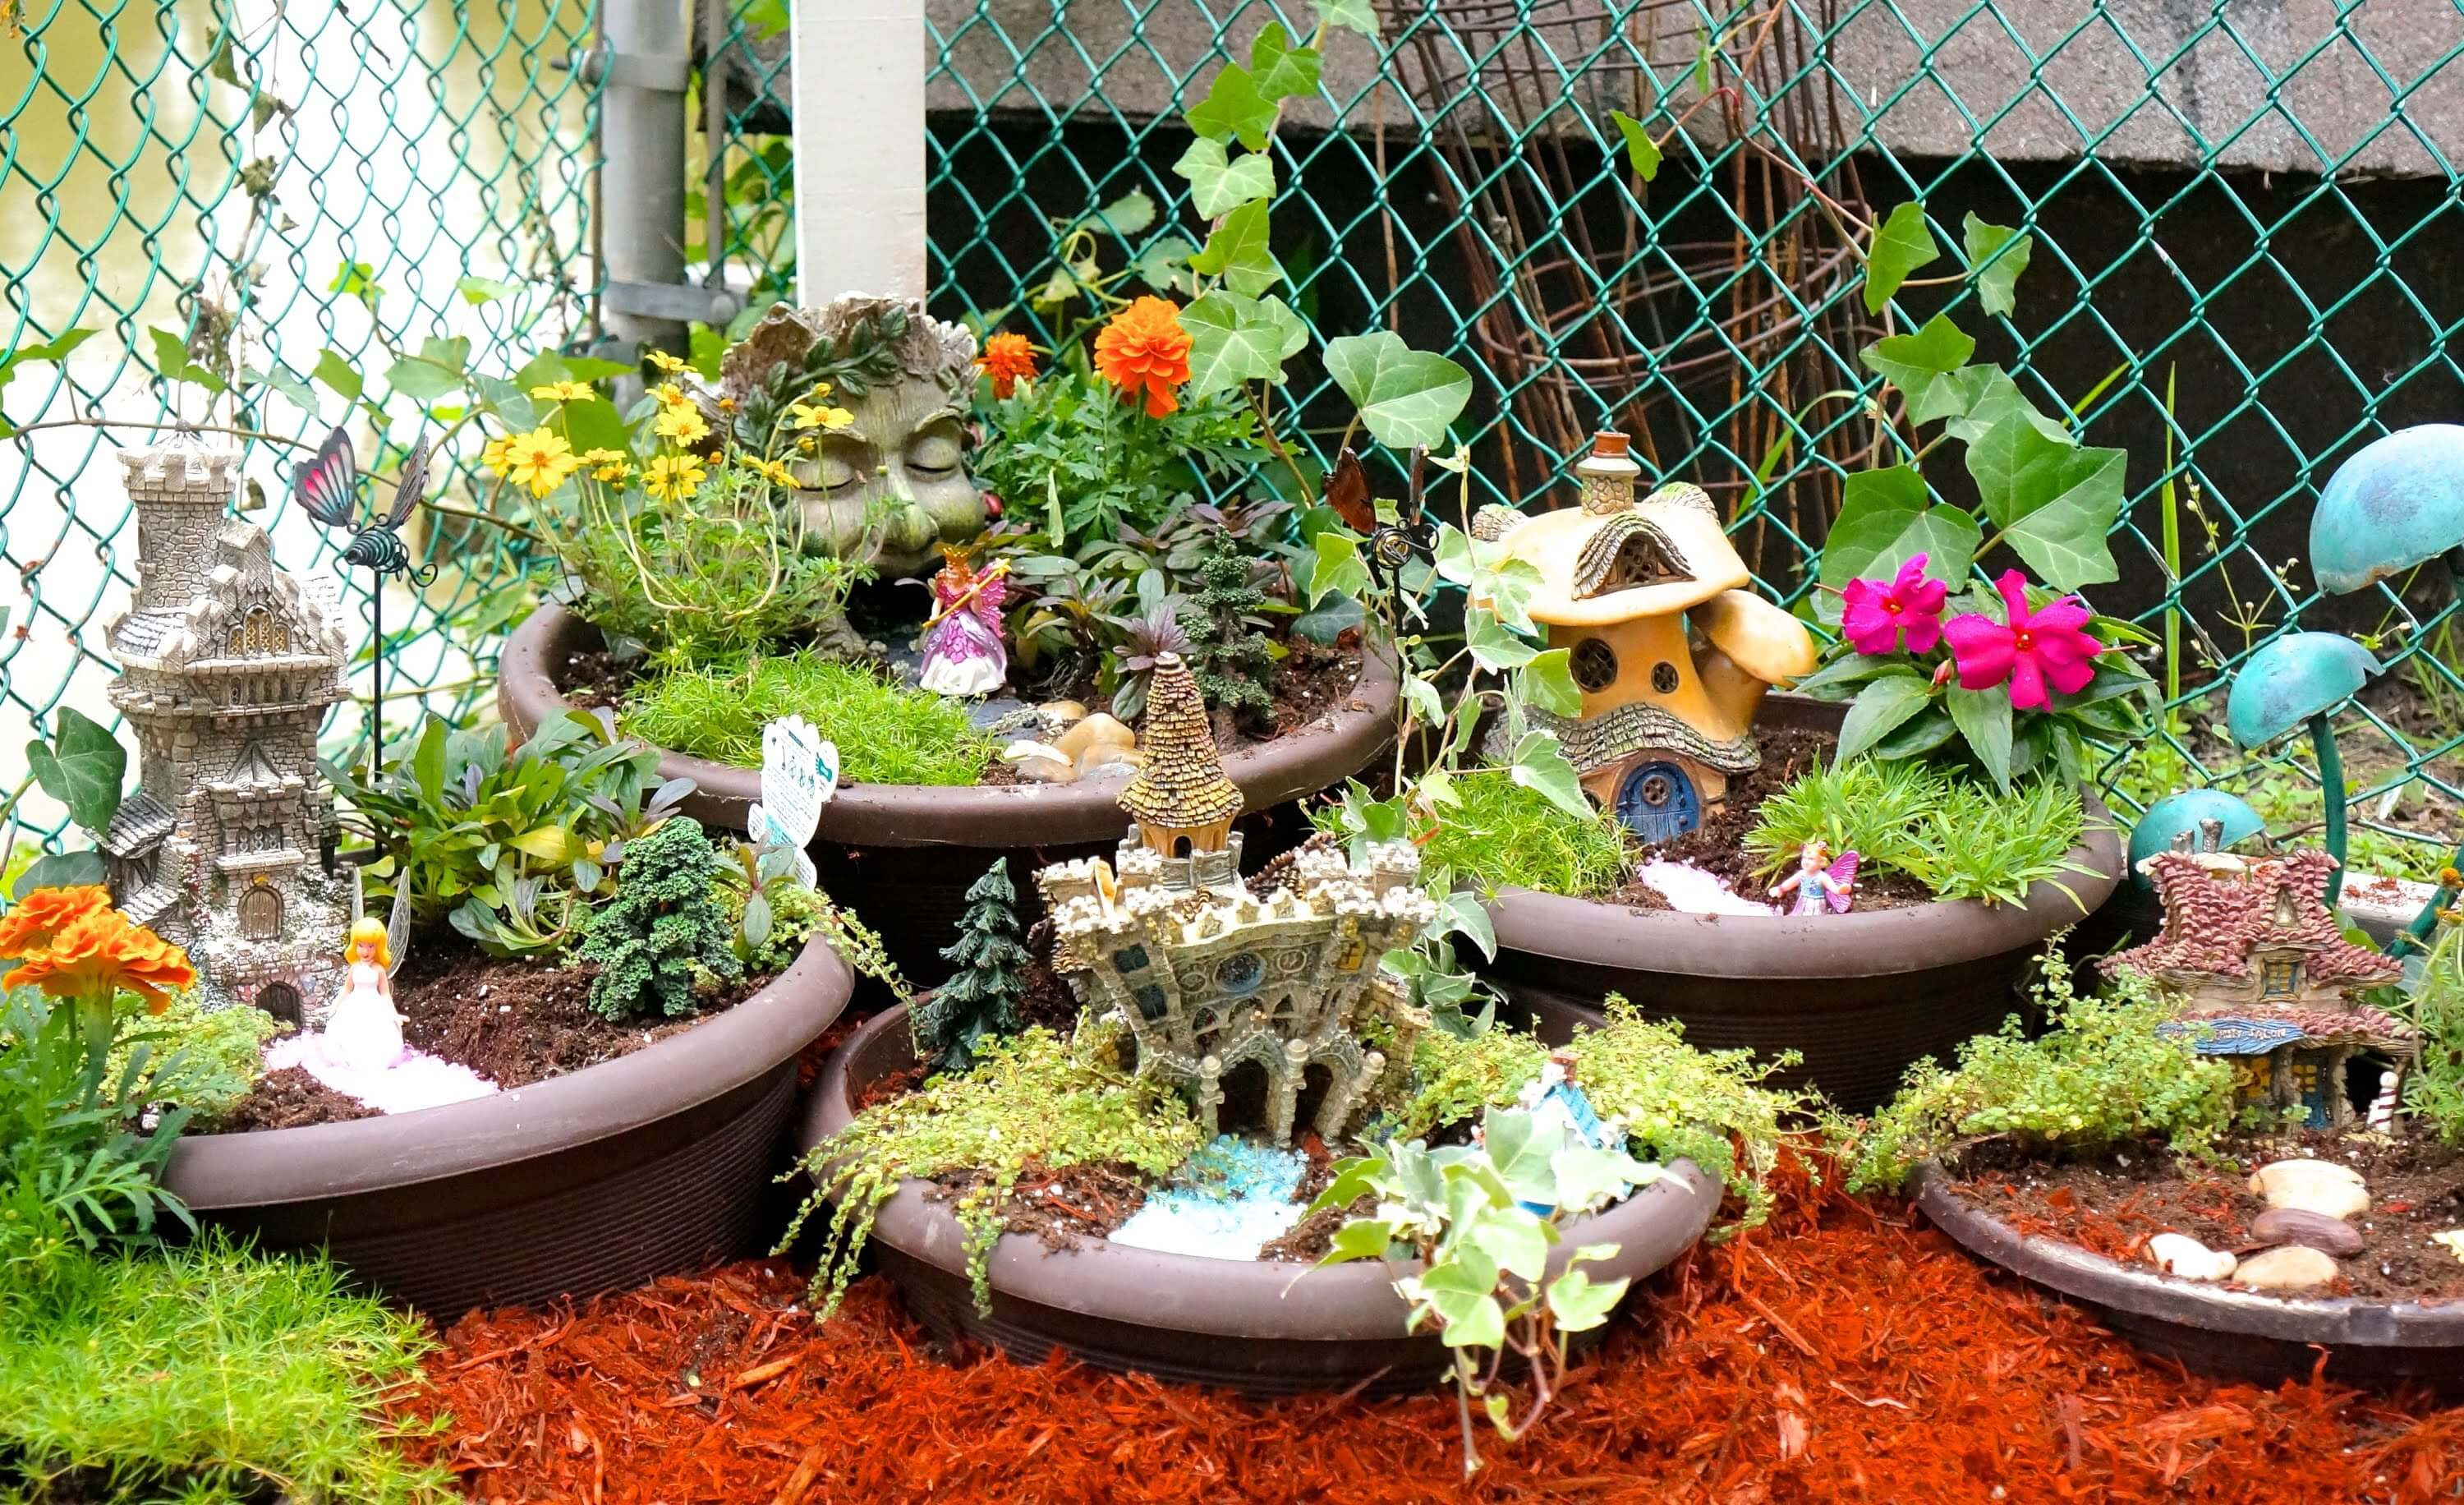 Indulge In Creative Imagination With Miniature Fairy Garden ...